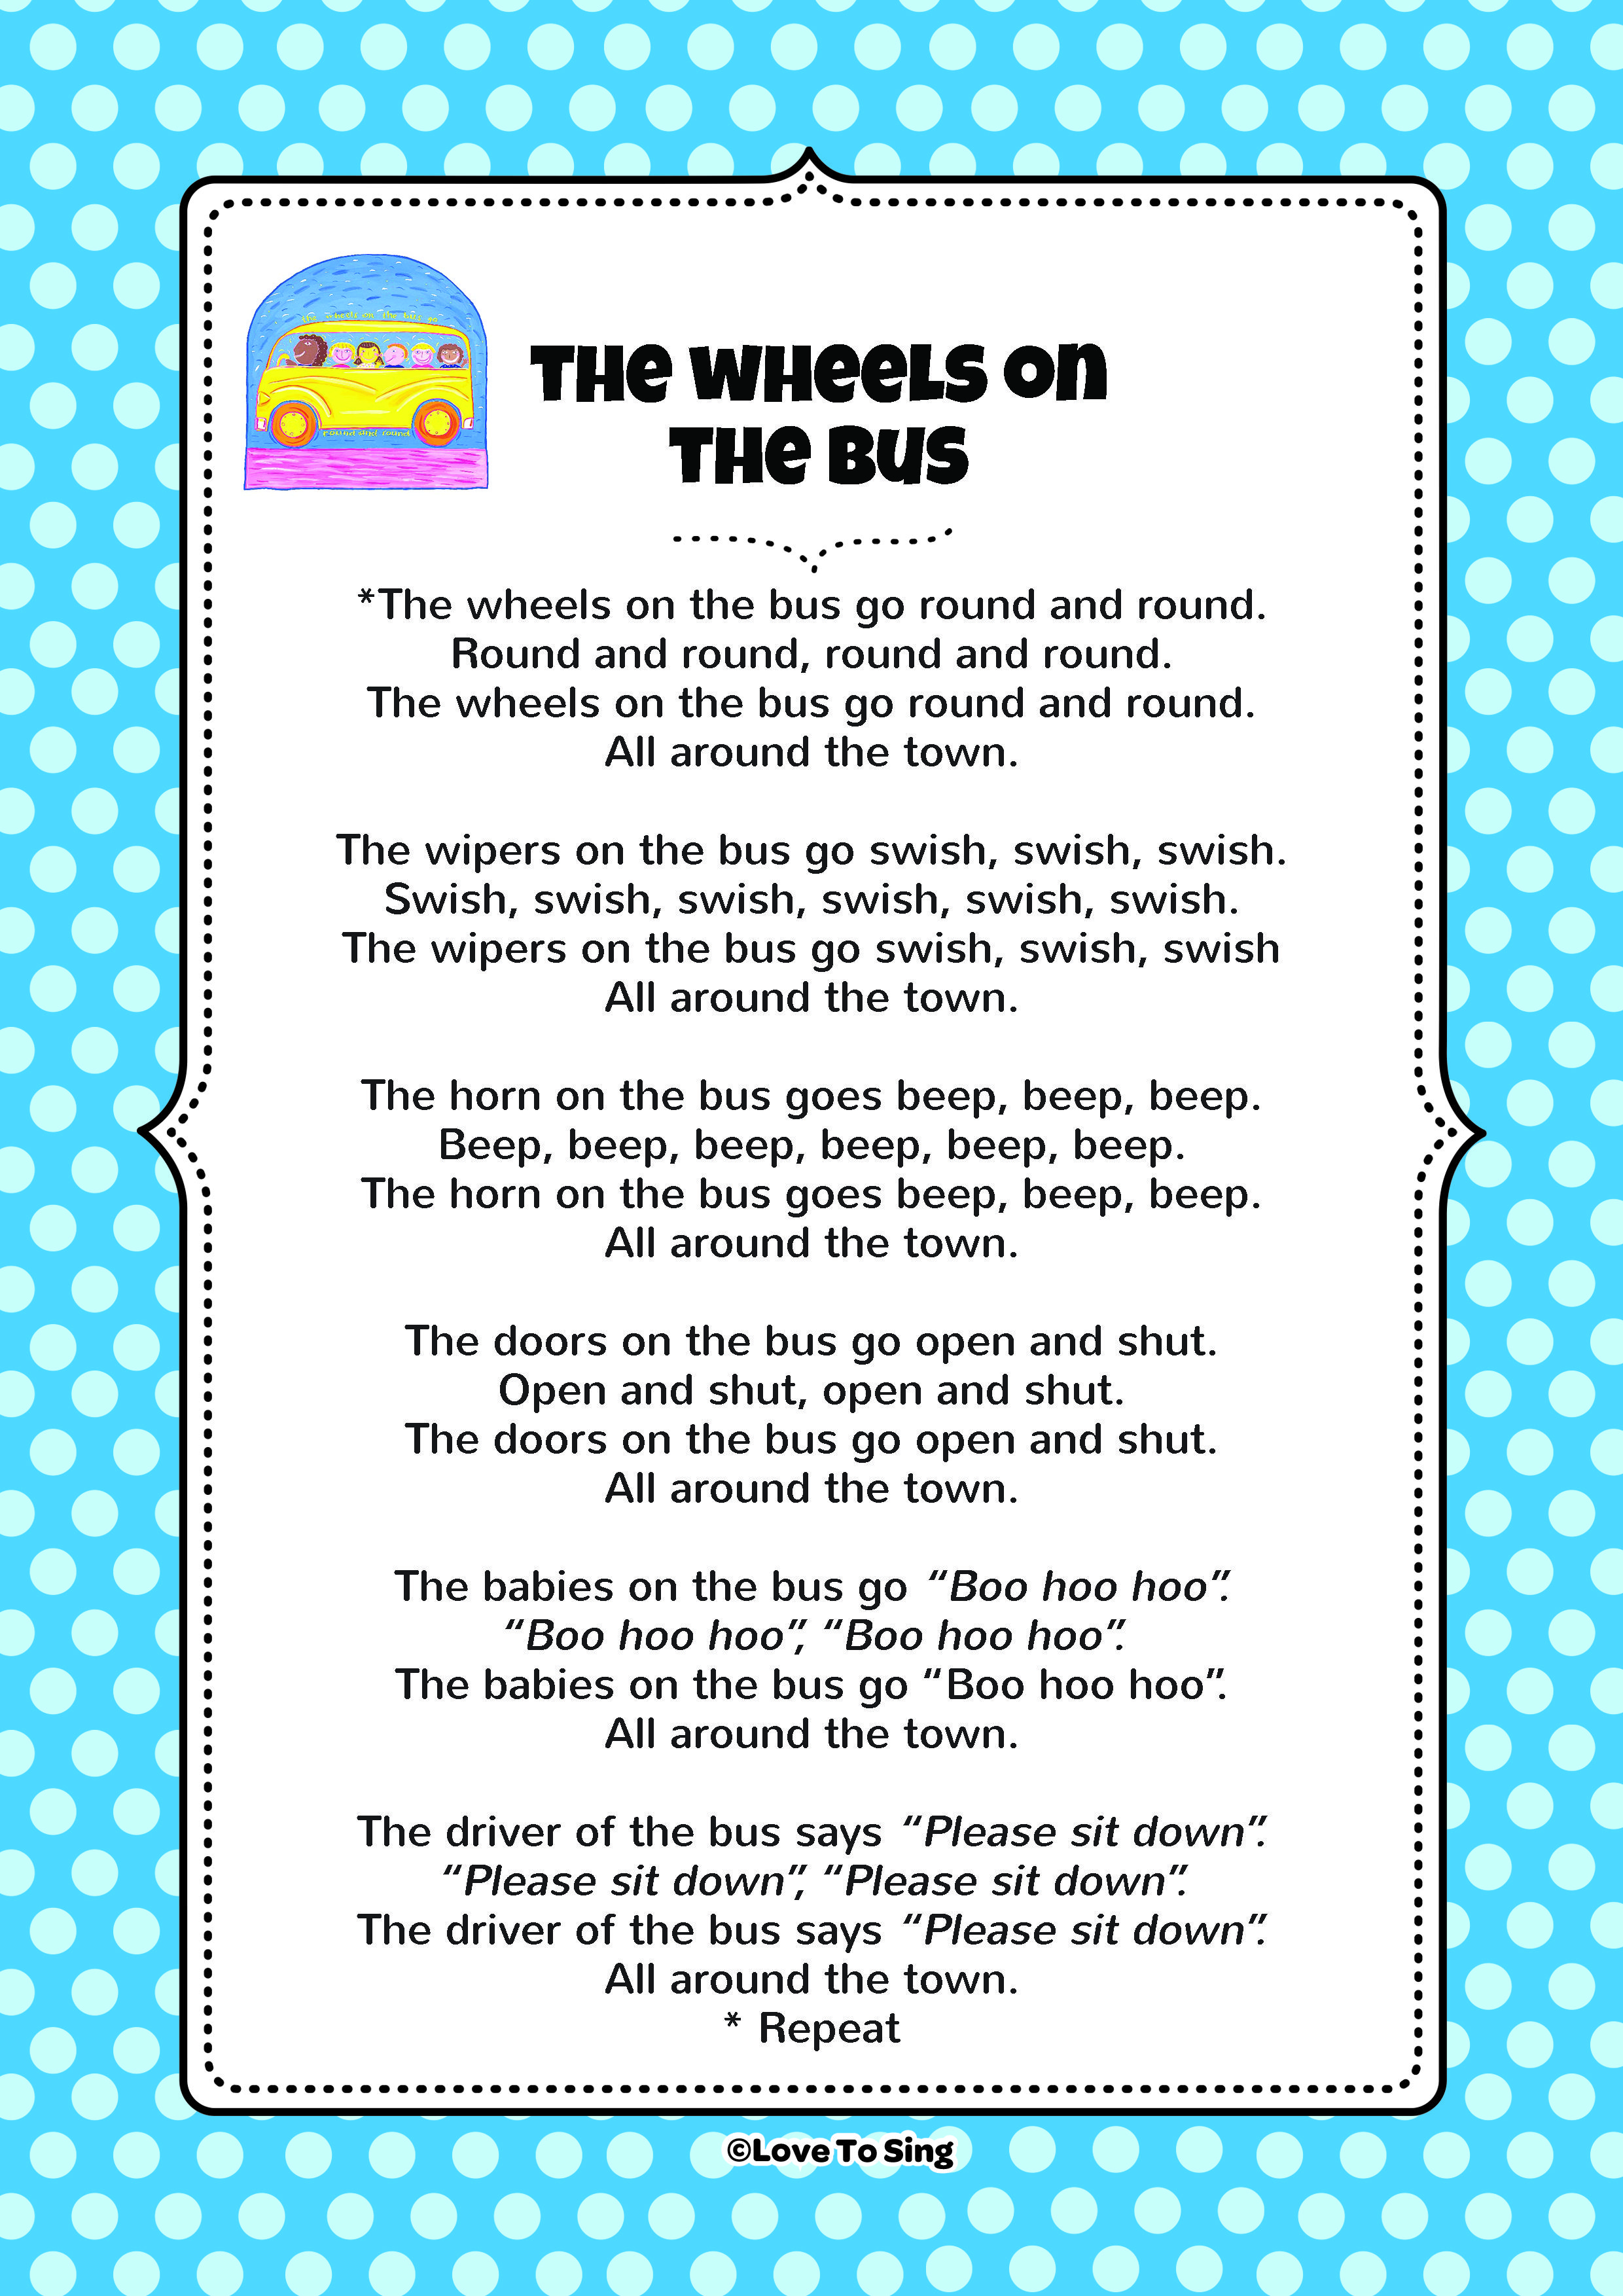 I chose this because this nursery rhyme has a lot of ...